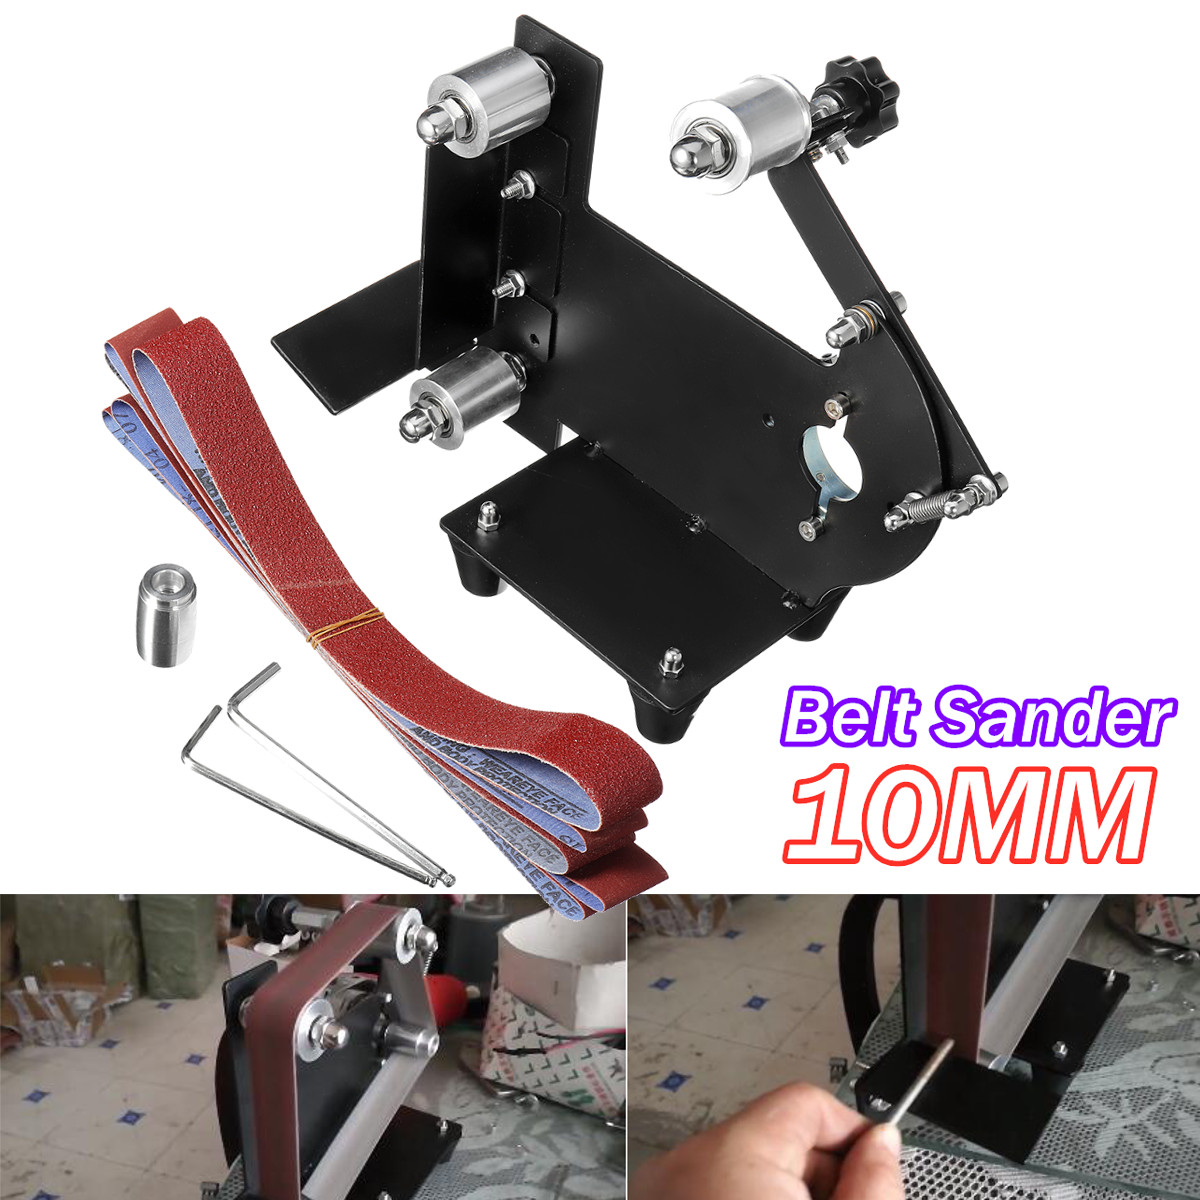 DIY 10mm Angle Grinder Sanding Belt Rack Sander Attachment Polishing Woodworking Tools Set Metal Wood Sanding Machine Adapter